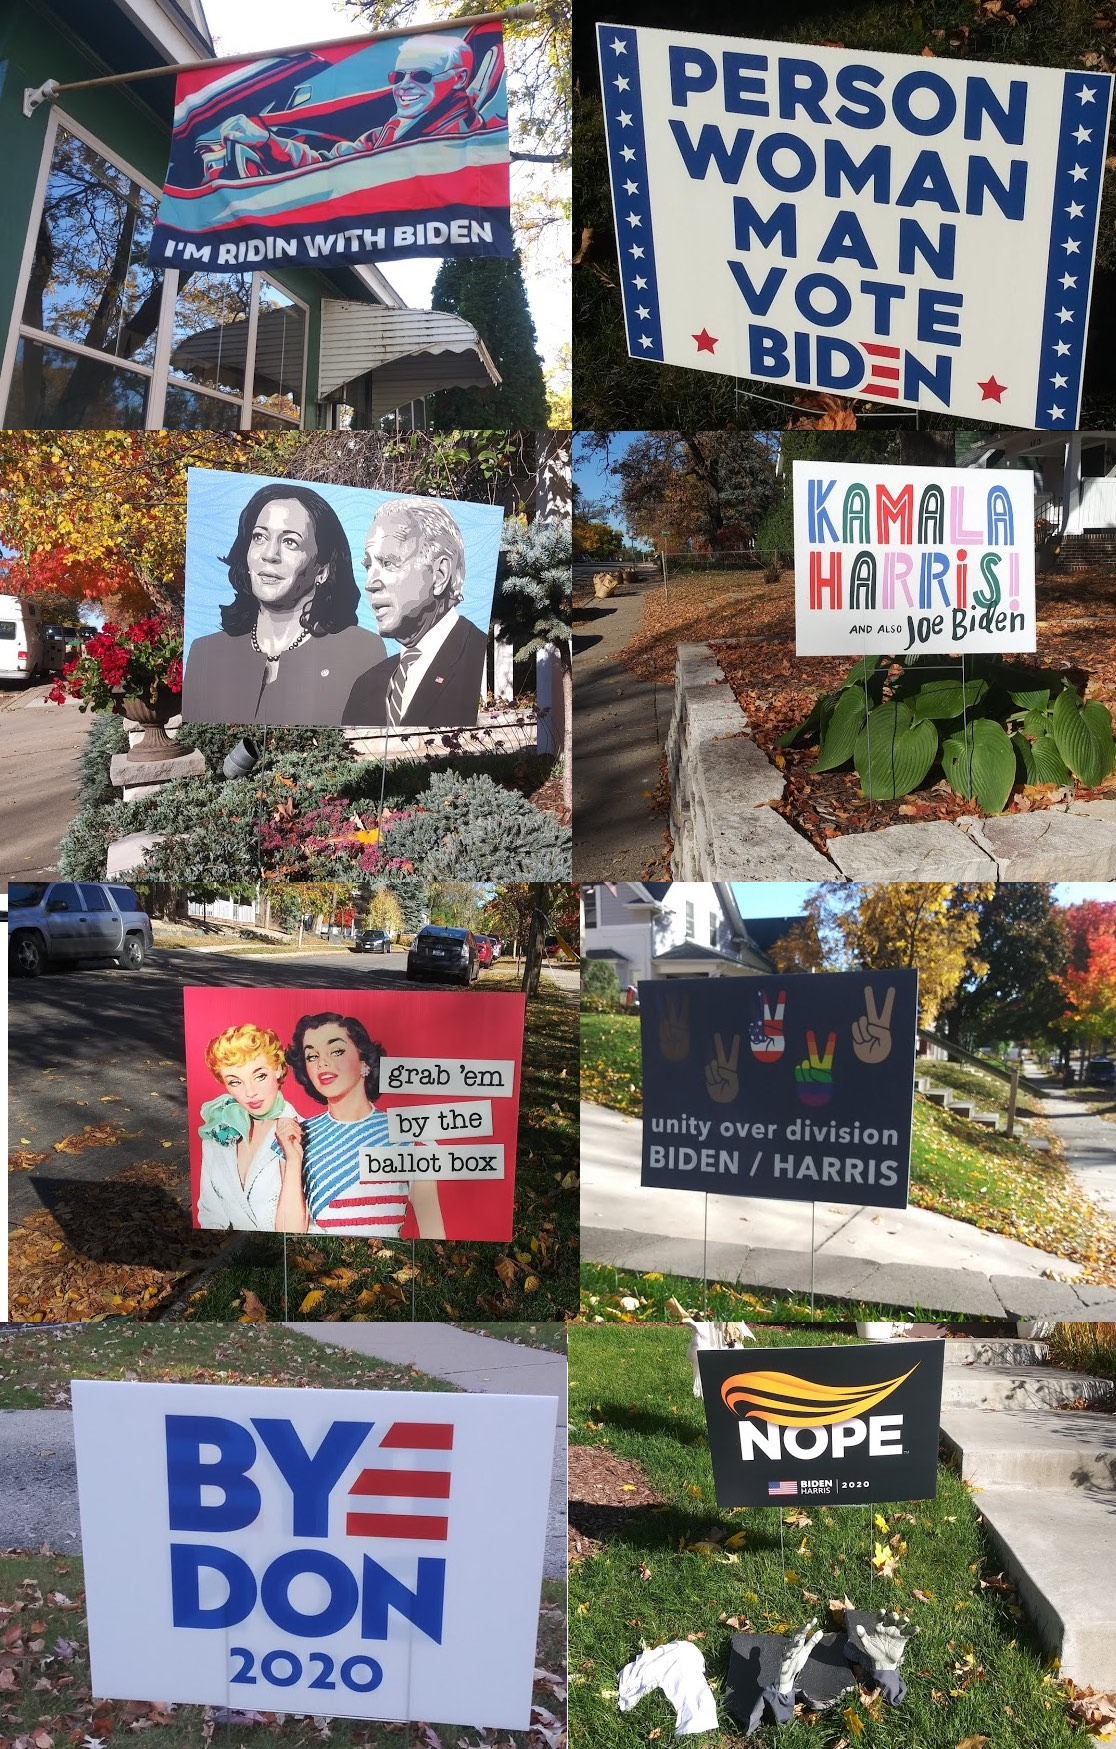 A collection of pro-Biden signs, including a hand-painted portrait of Biden/Harris, one that says 'I'm ridin' with Biden,' and one that says 'grab 'em by the  ballot box'